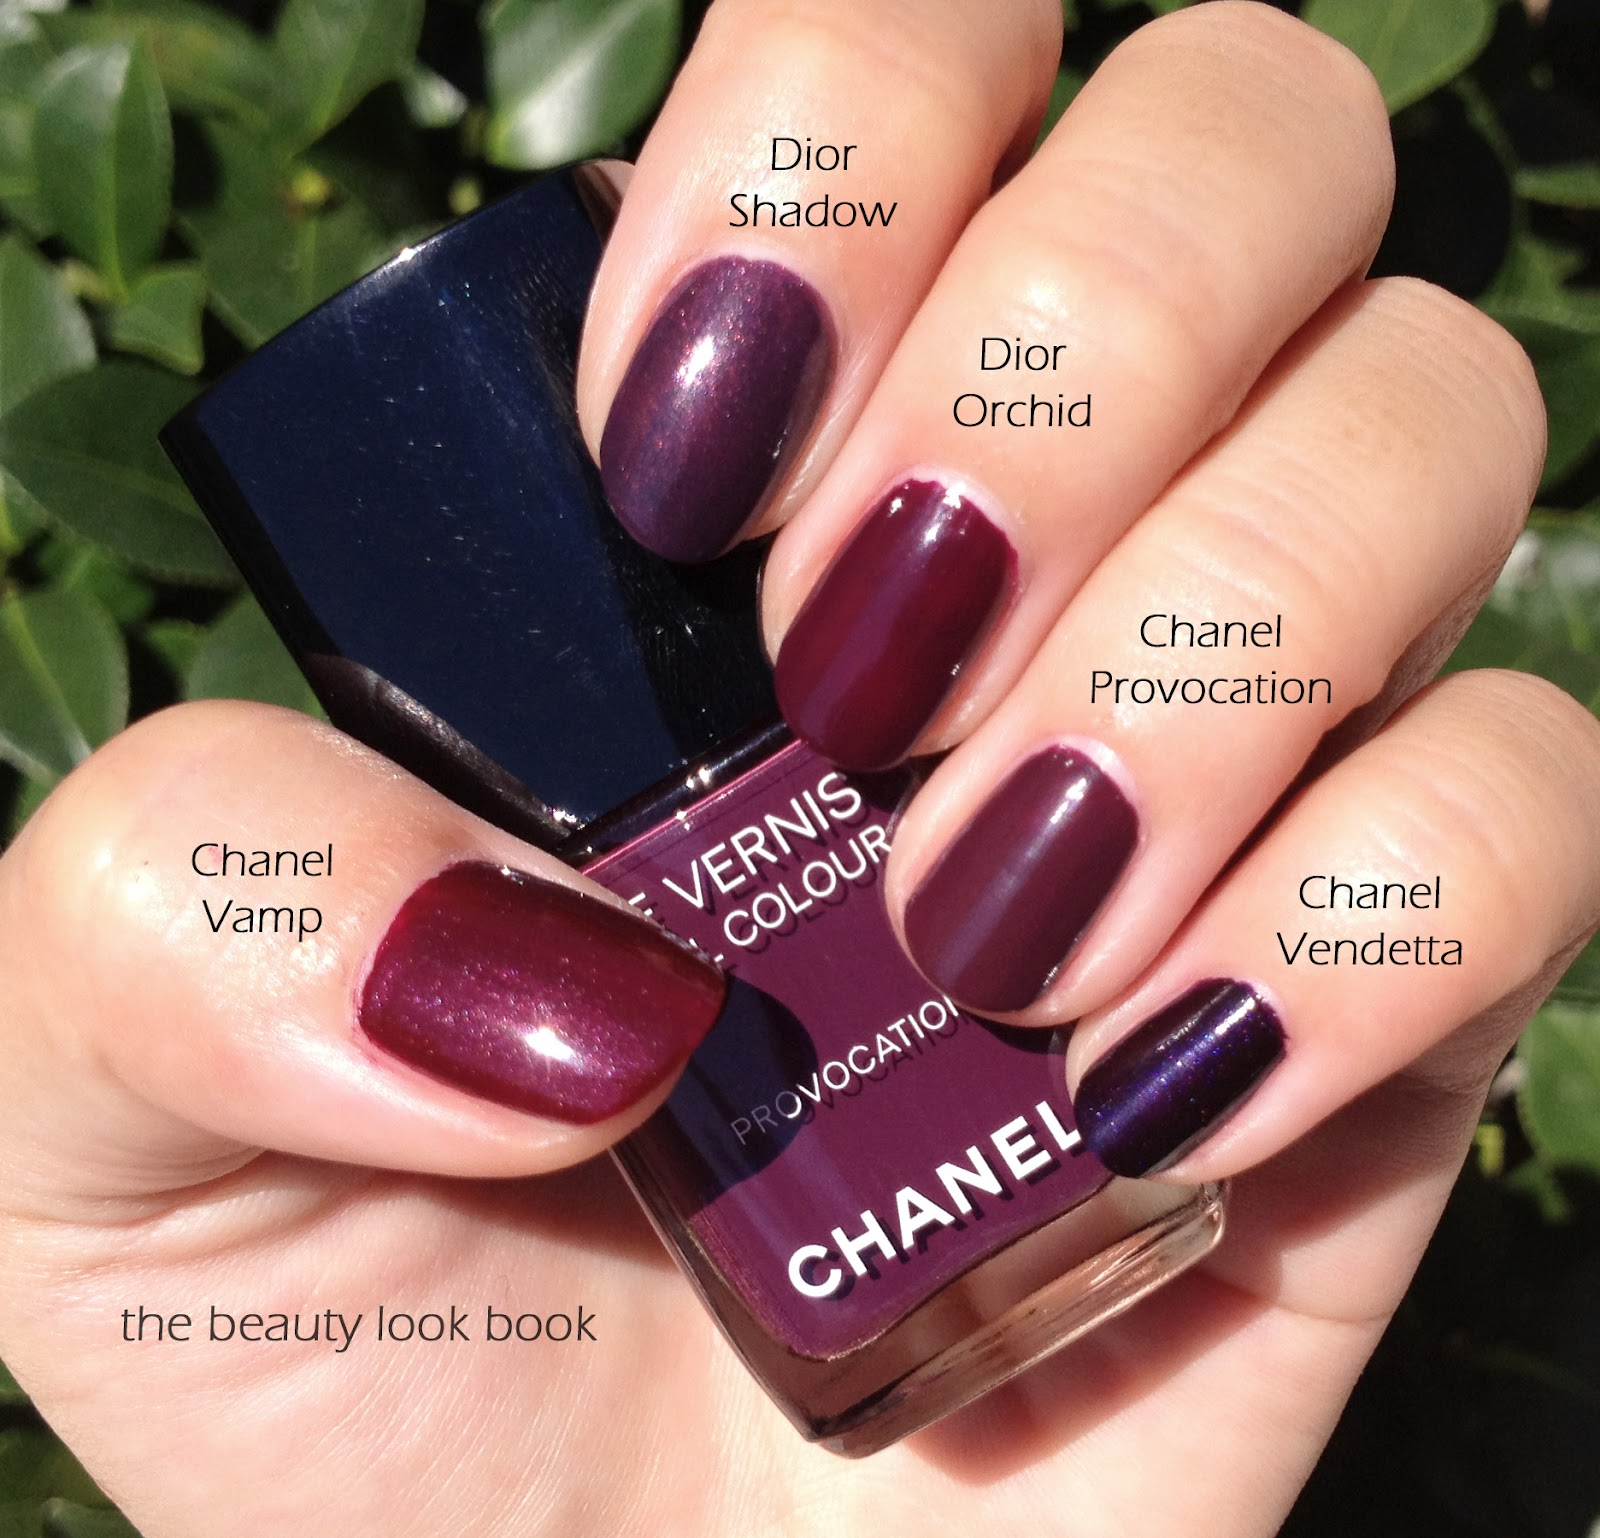 Chanel Provocation Le Vernis